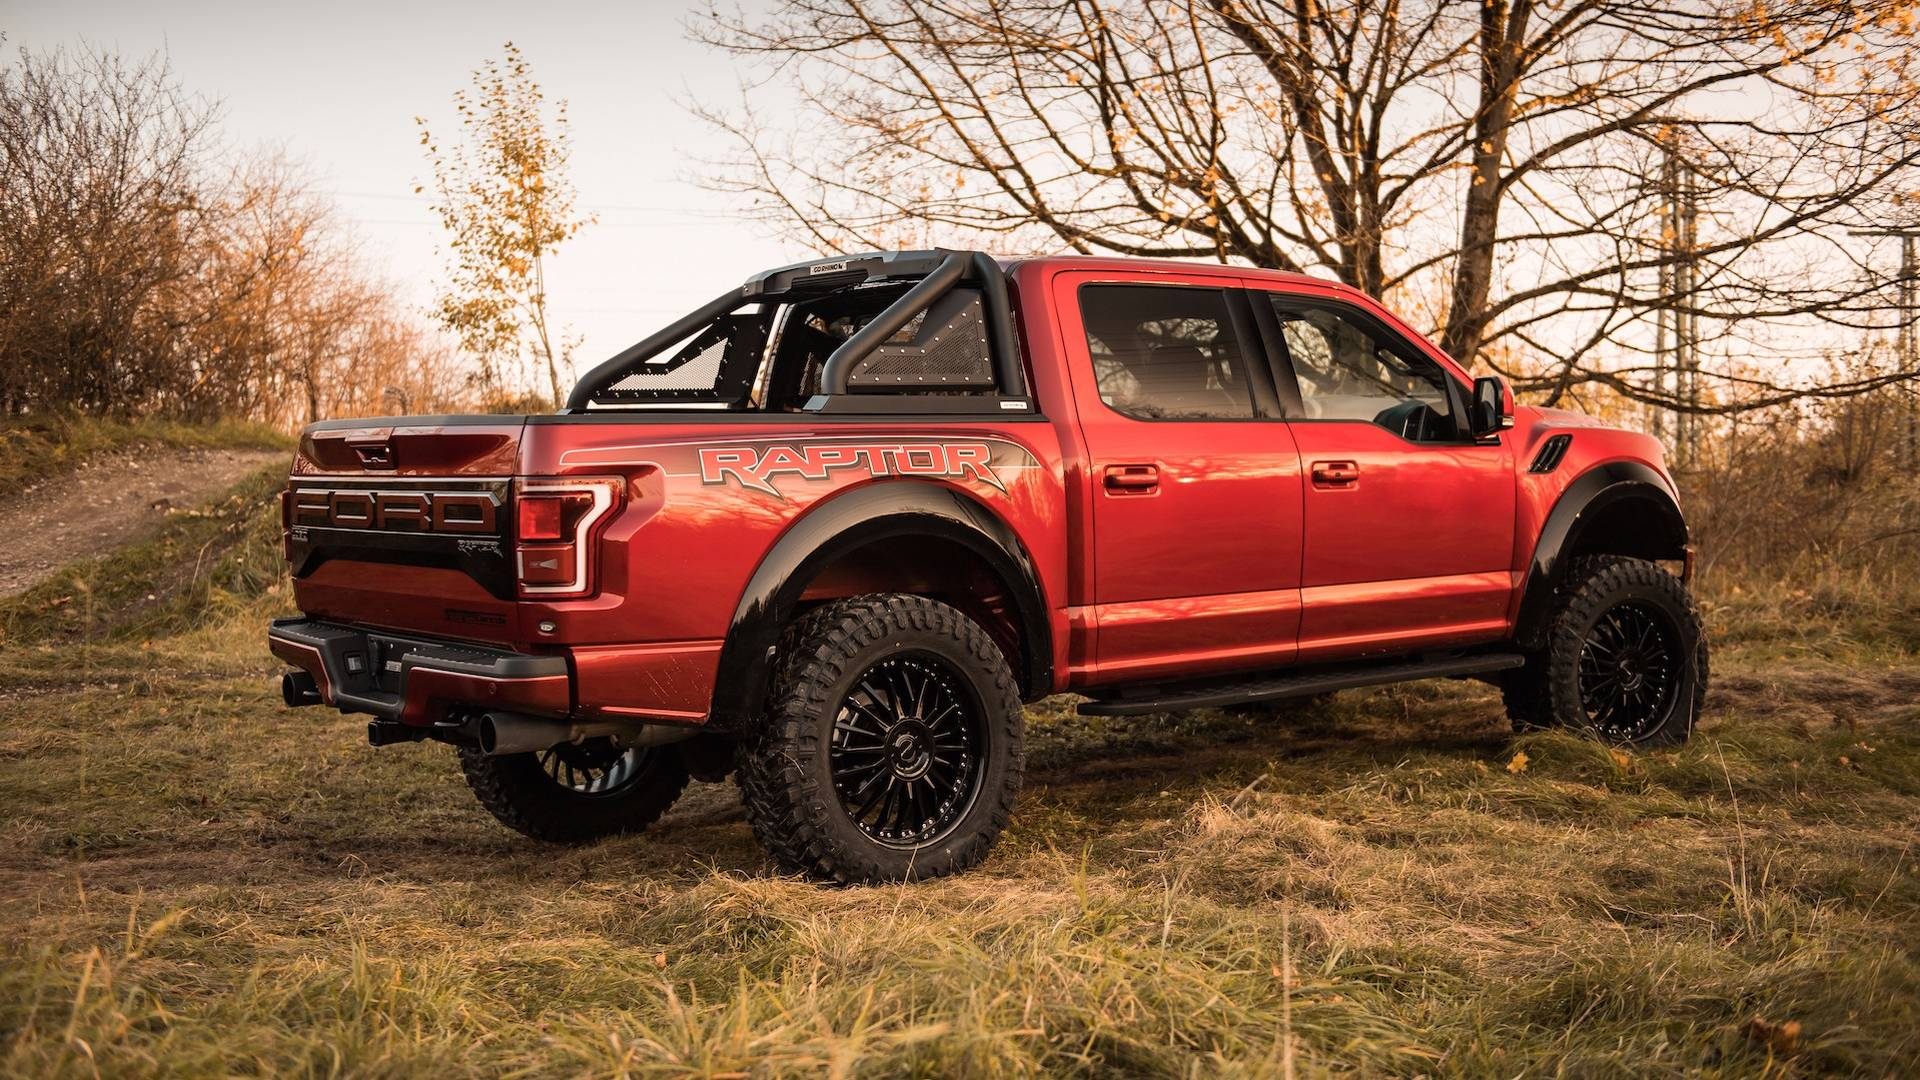 ford f 150 raptor gets the geiger cars treatment tuned to 519 ps autoevolution. Black Bedroom Furniture Sets. Home Design Ideas